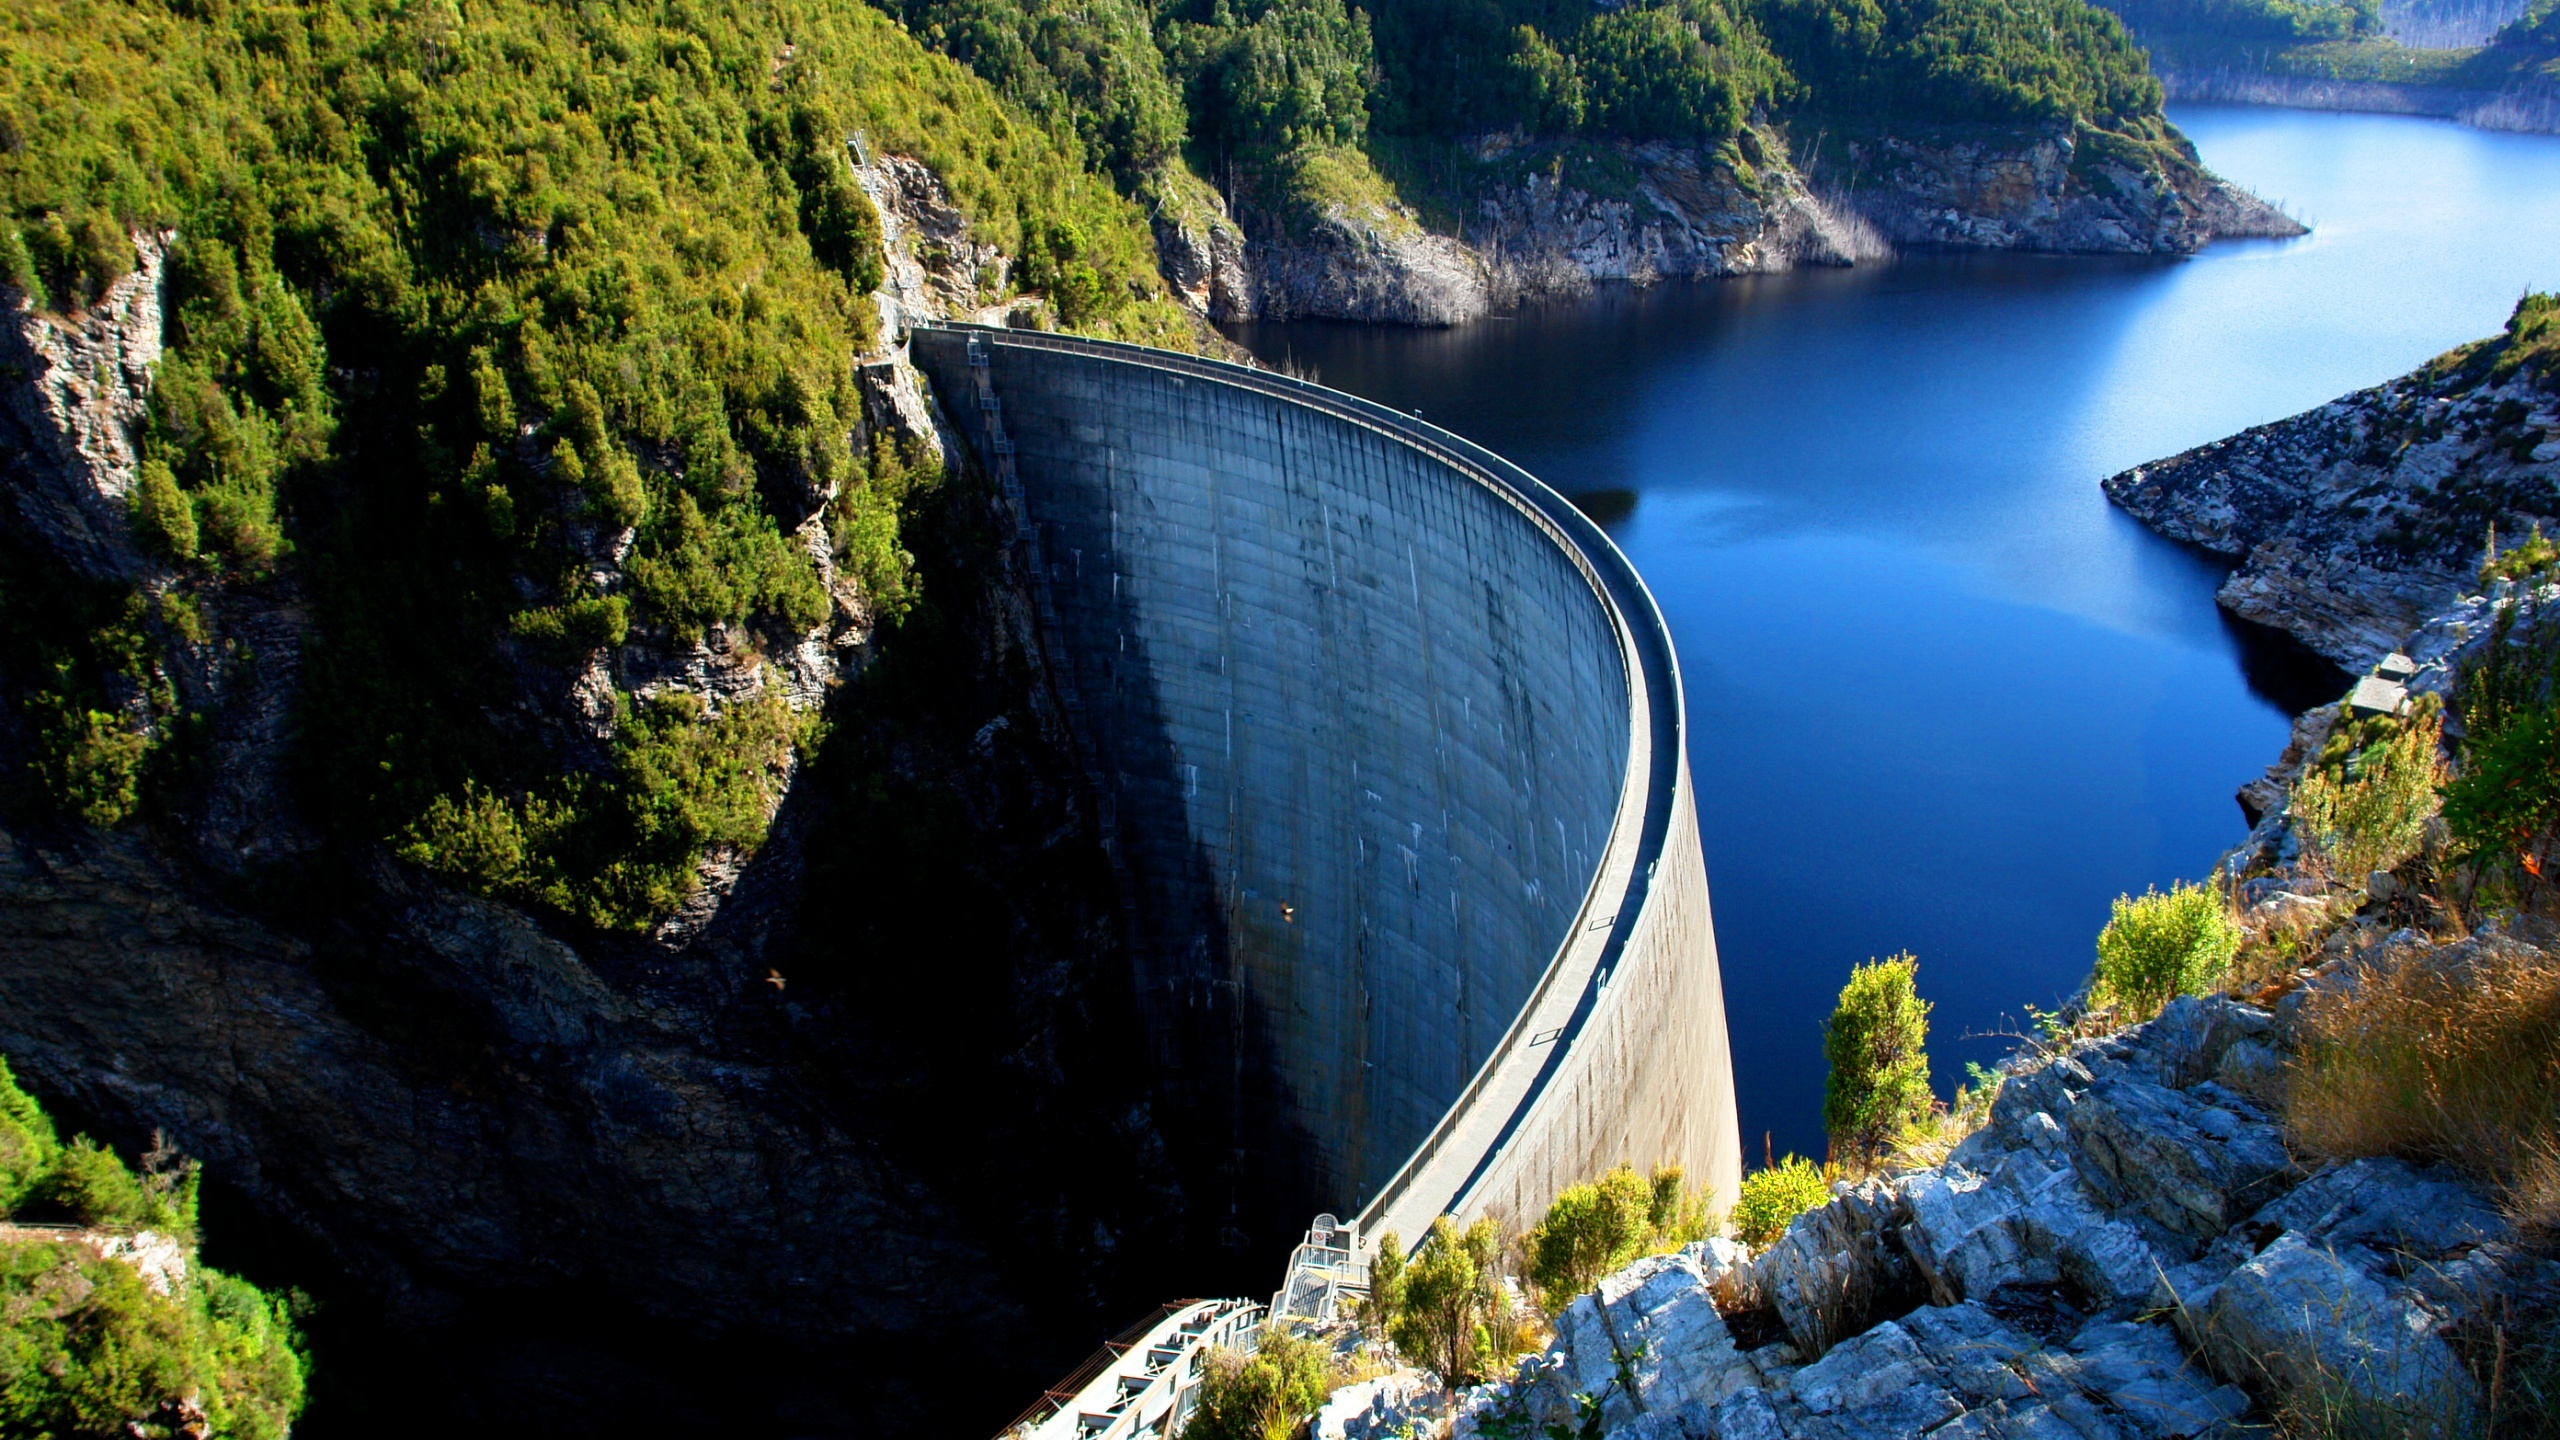 Gordon Dam Tasmania Australia Wallpapers   2560x1440   1465659 2560x1440